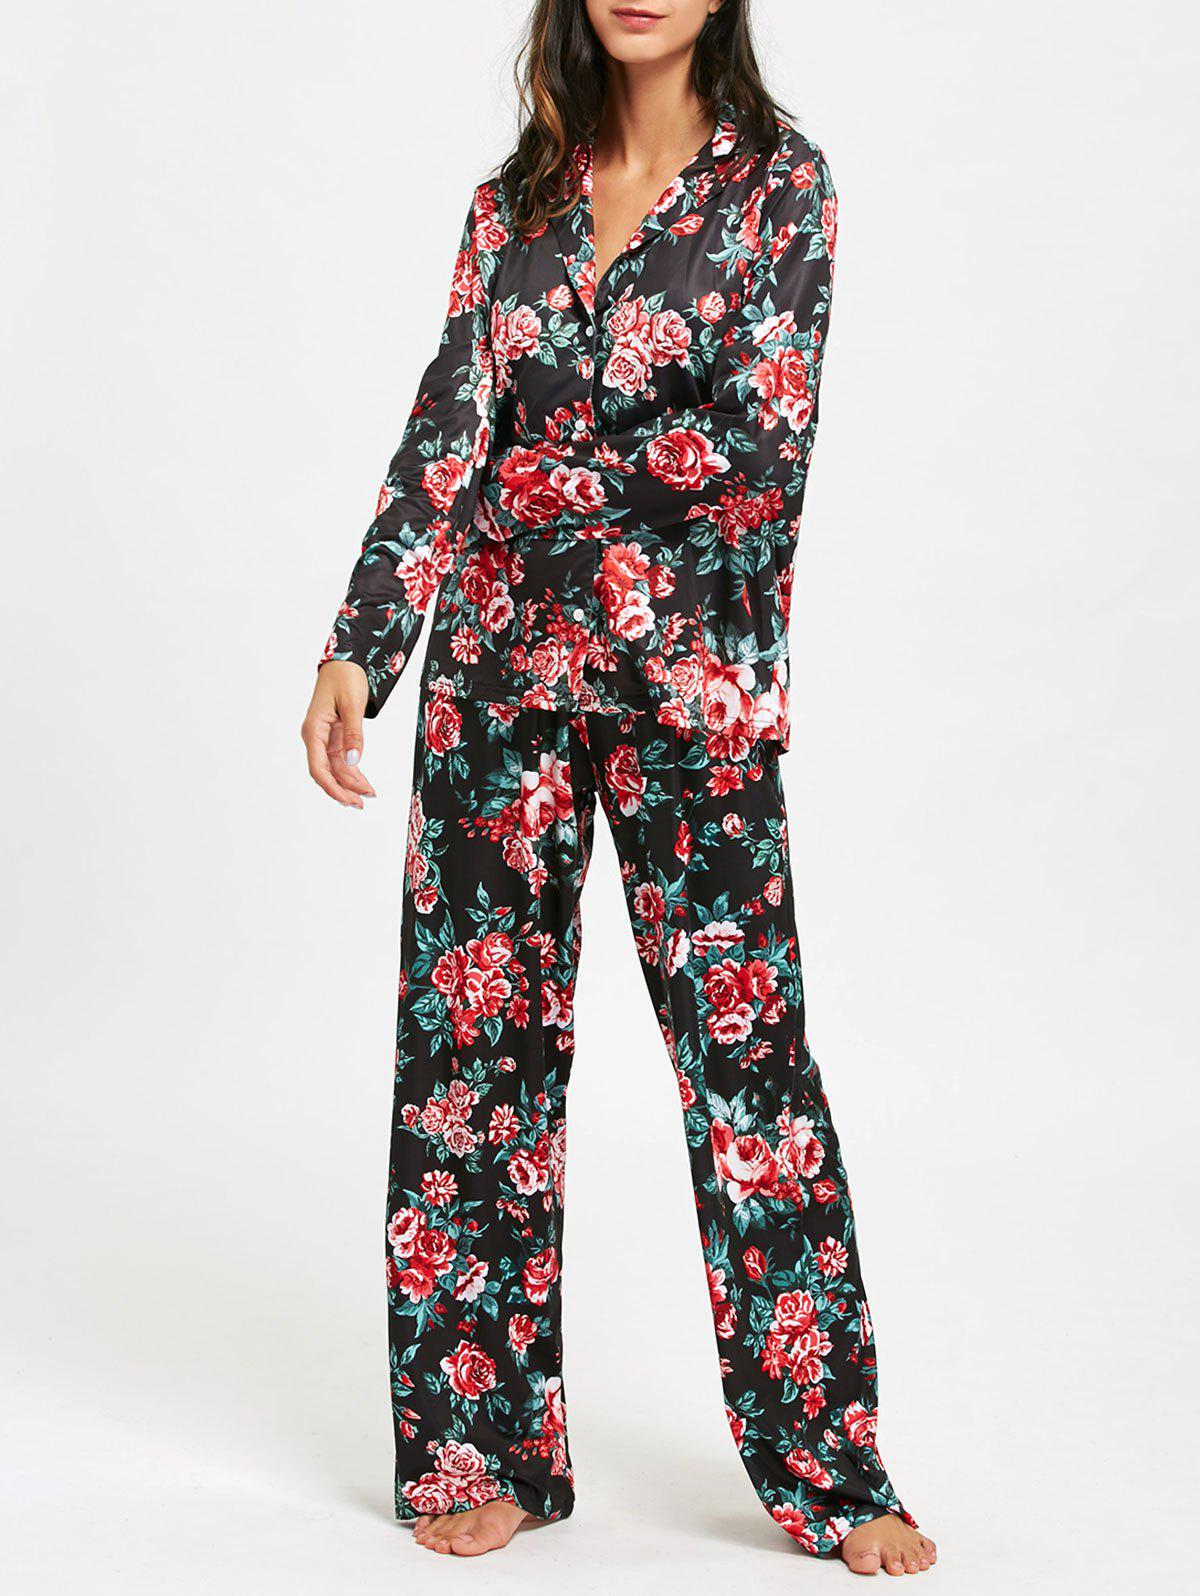 Floral Print Long Sleeve Pajama SetWOMEN<br><br>Size: L; Color: COLORMIX; Material: Polyester; Pattern Type: Floral; Weight: 0.5700kg; Package Contents: 1 x Pajama Set;